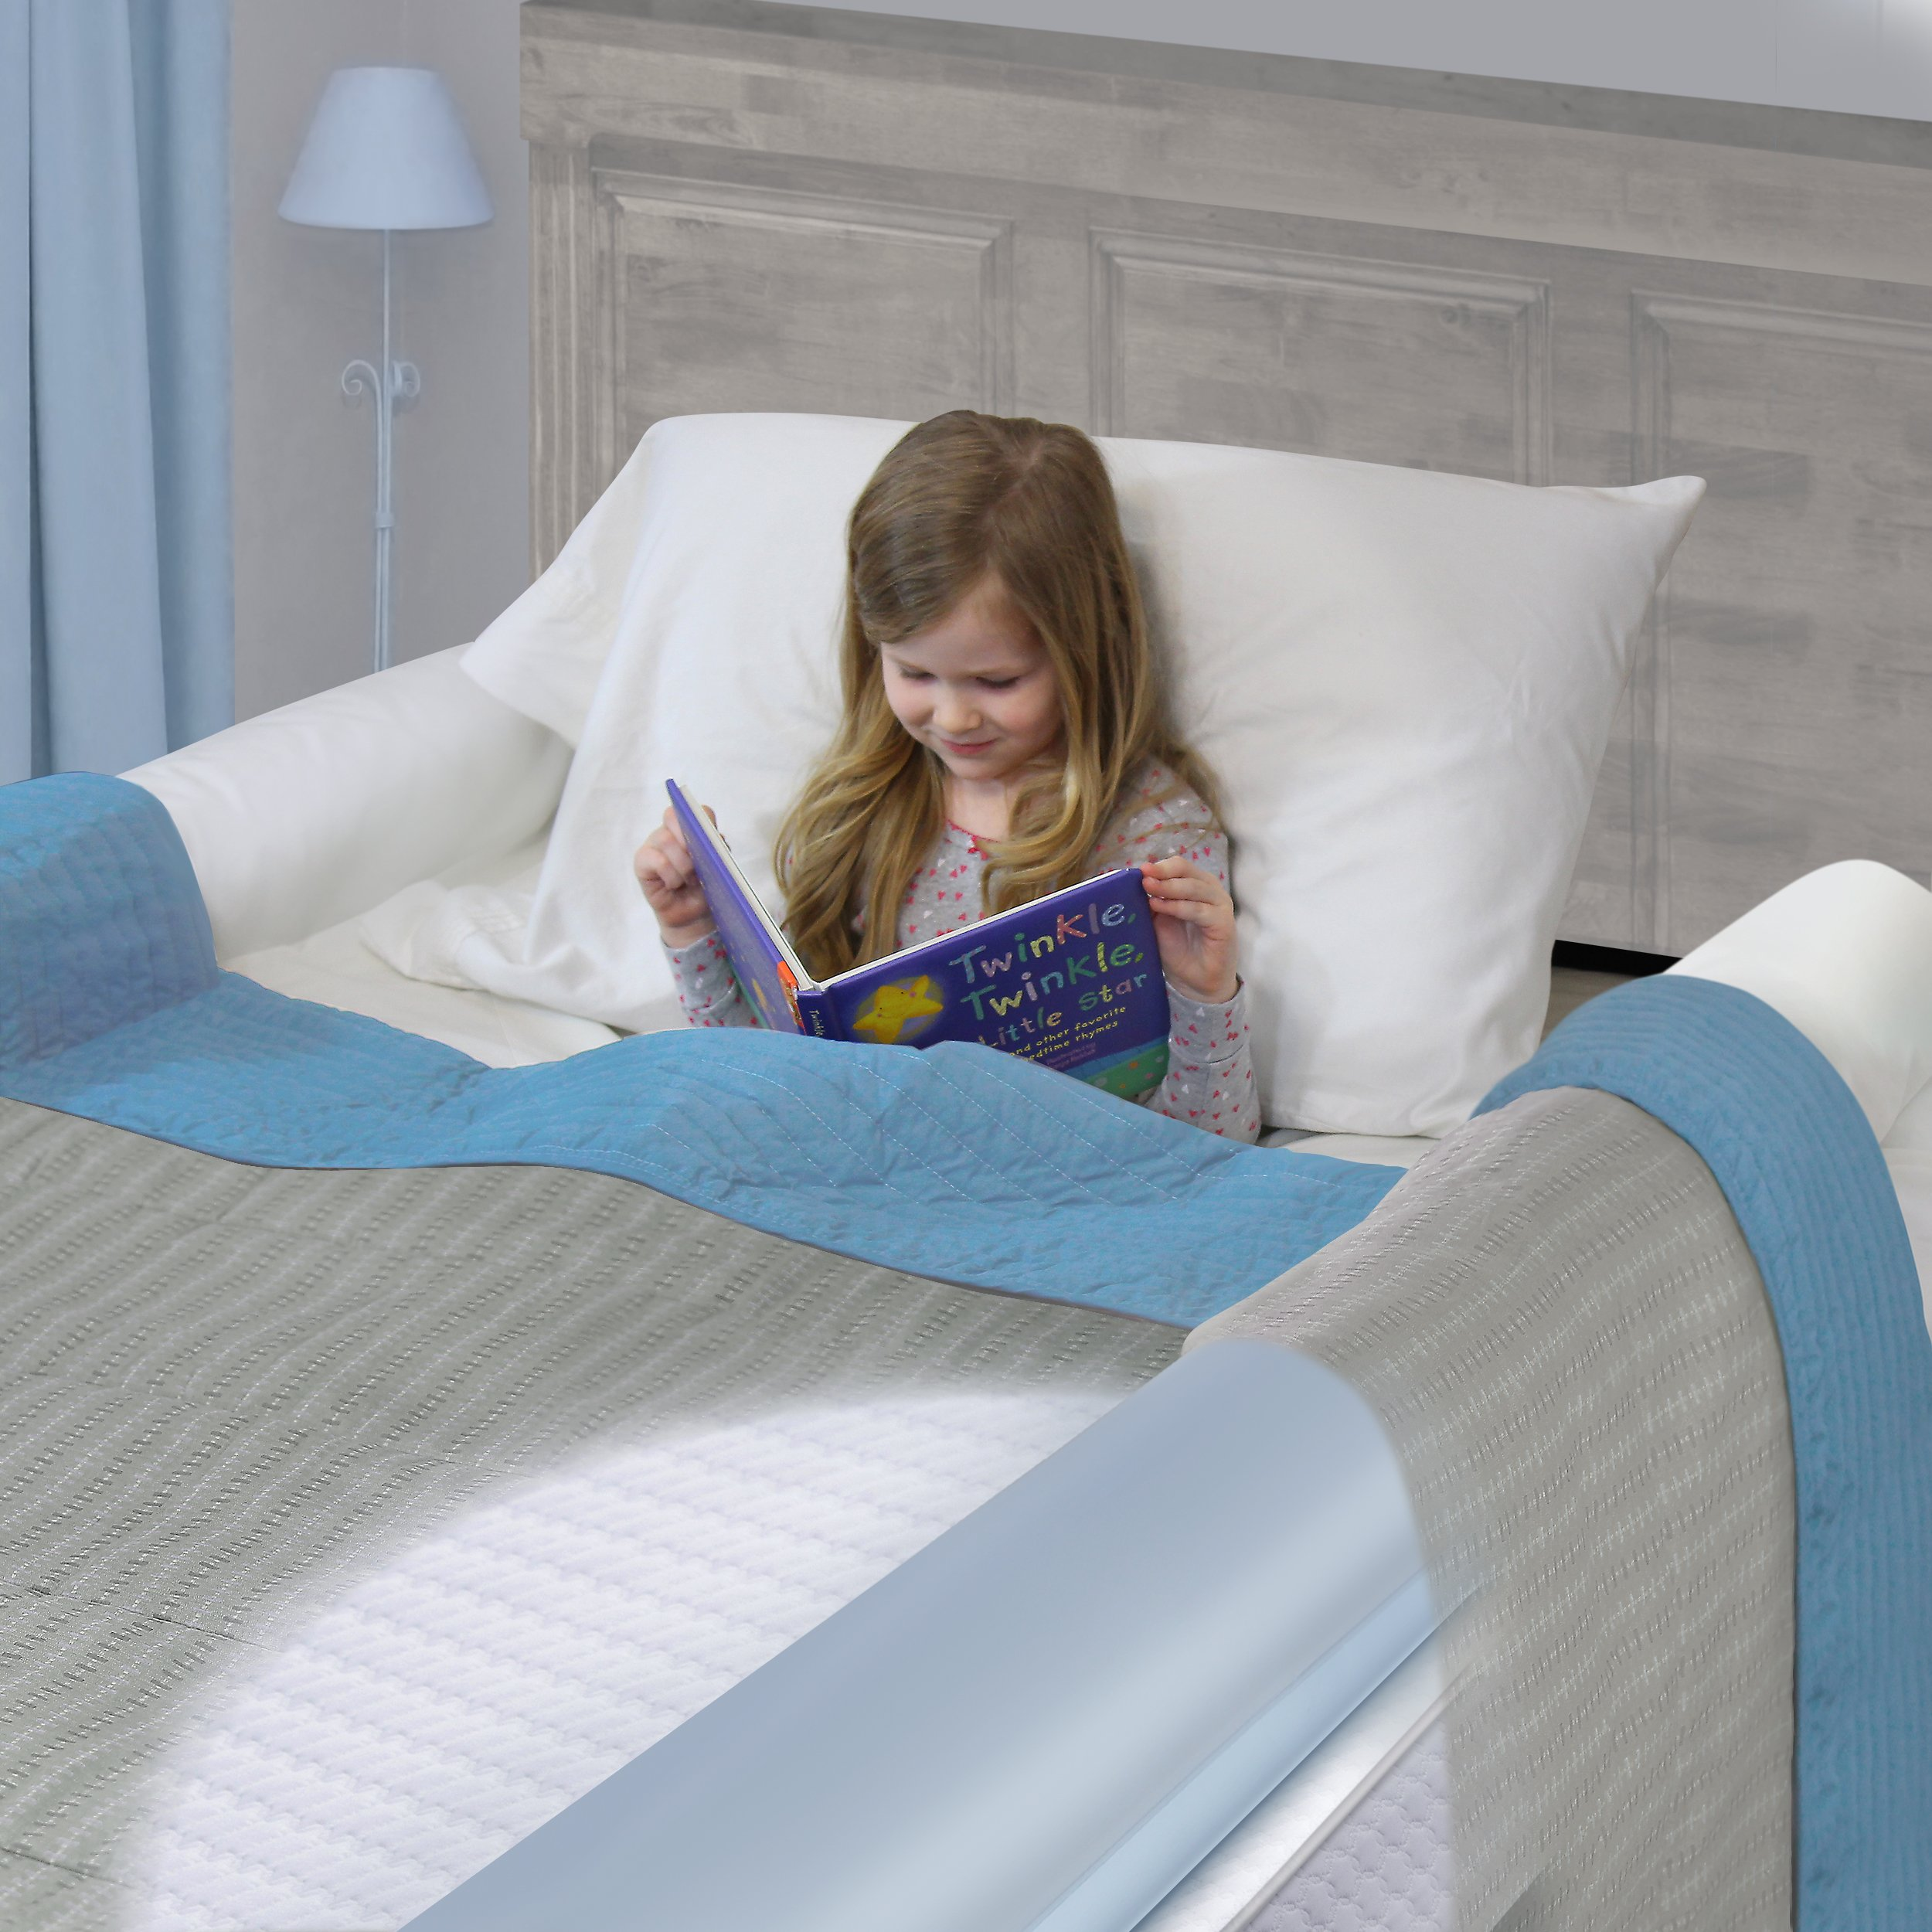 Royexe - The Original Bed Rails for Toddlers. Portable Bed Rail Bumper. Kids Inflatable Safety Guard for Bed. Fits All Sizes Beds. with Non-Slip Grip. Great for Home, Hotel, or Travel. (2-Pack) by Royexe